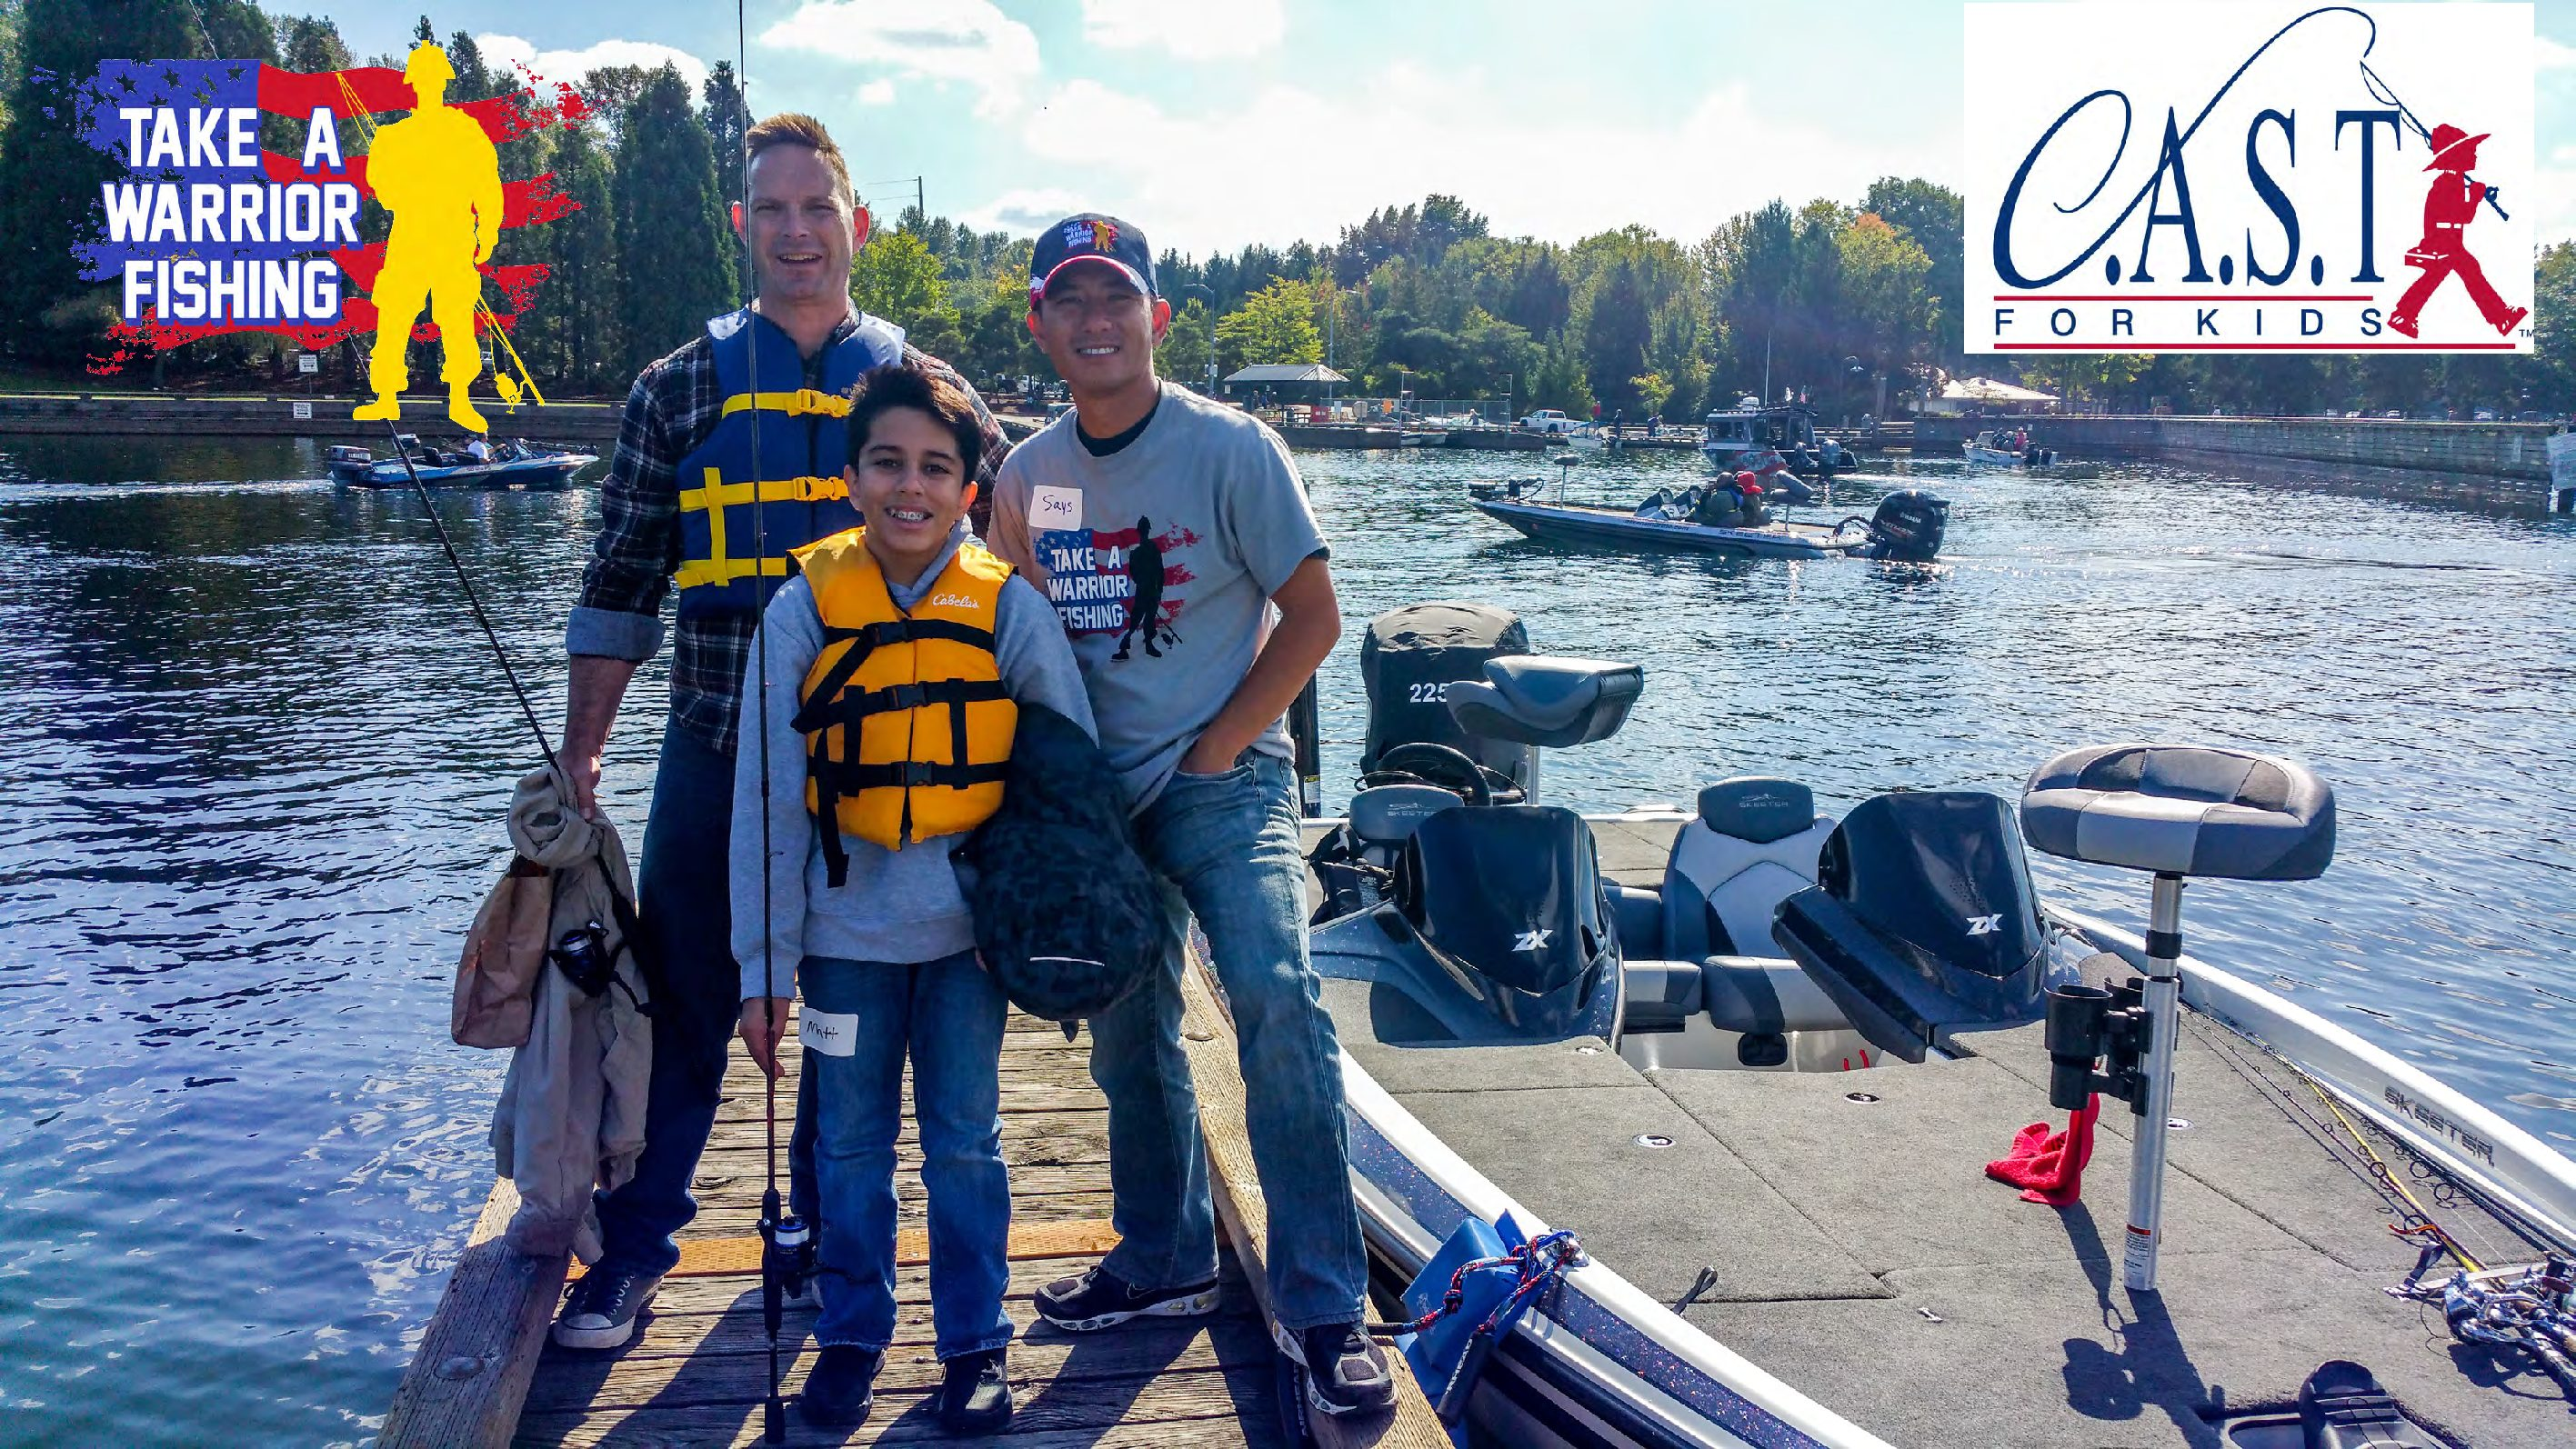 C.A.S.T. for Kids & Take a Warrior Fishing- Joint Base Lewis-McChord